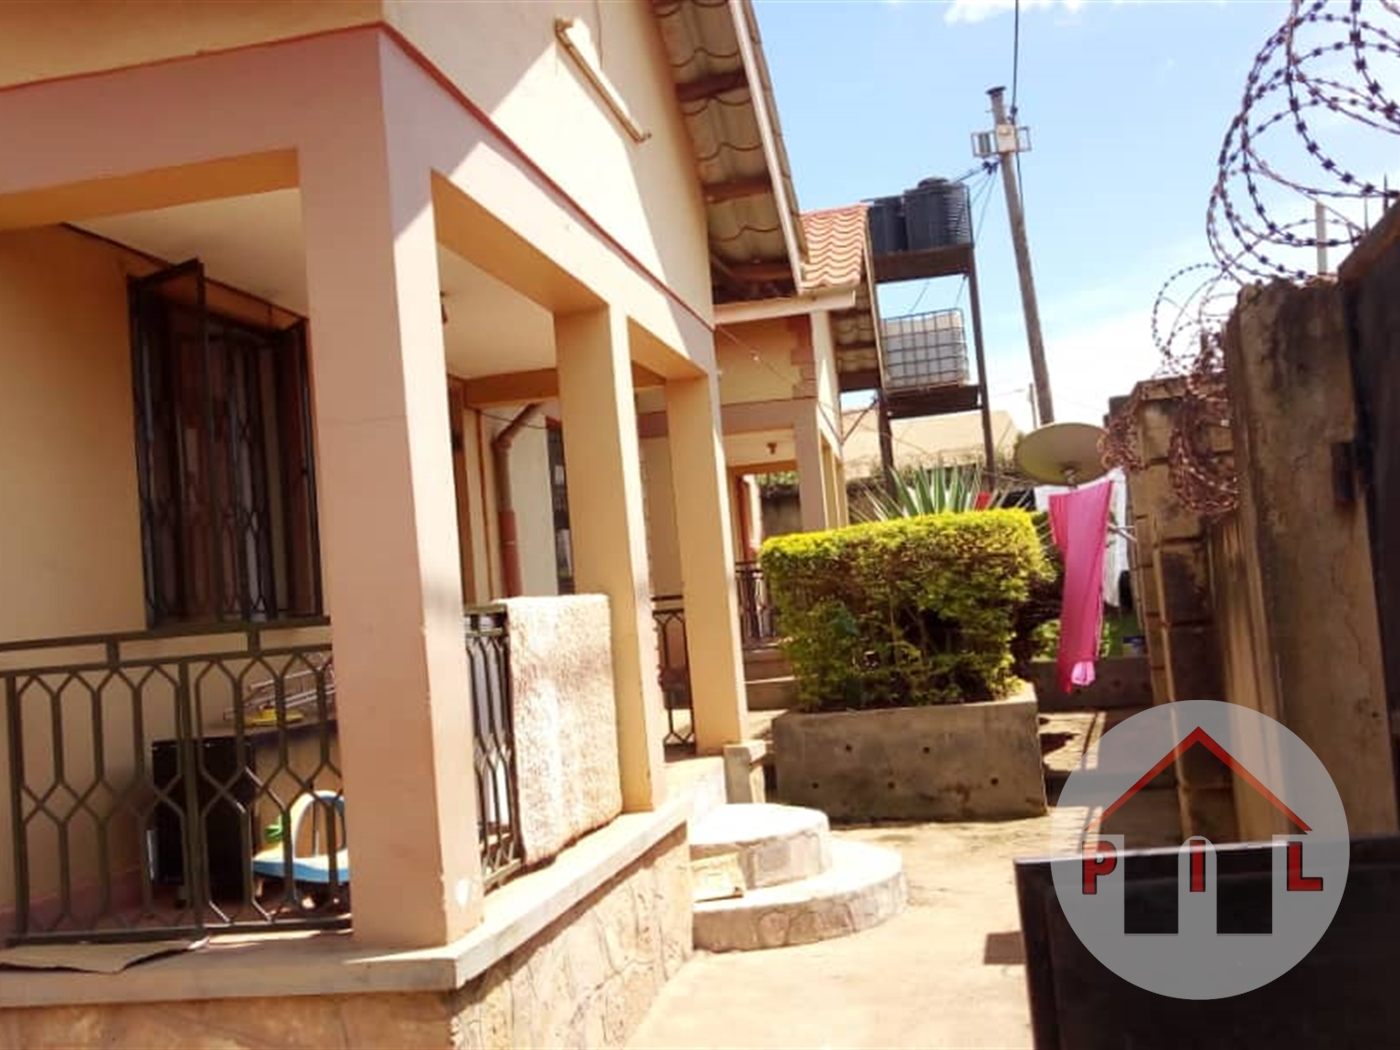 Rental units for sale in Bweyogerere Wakiso